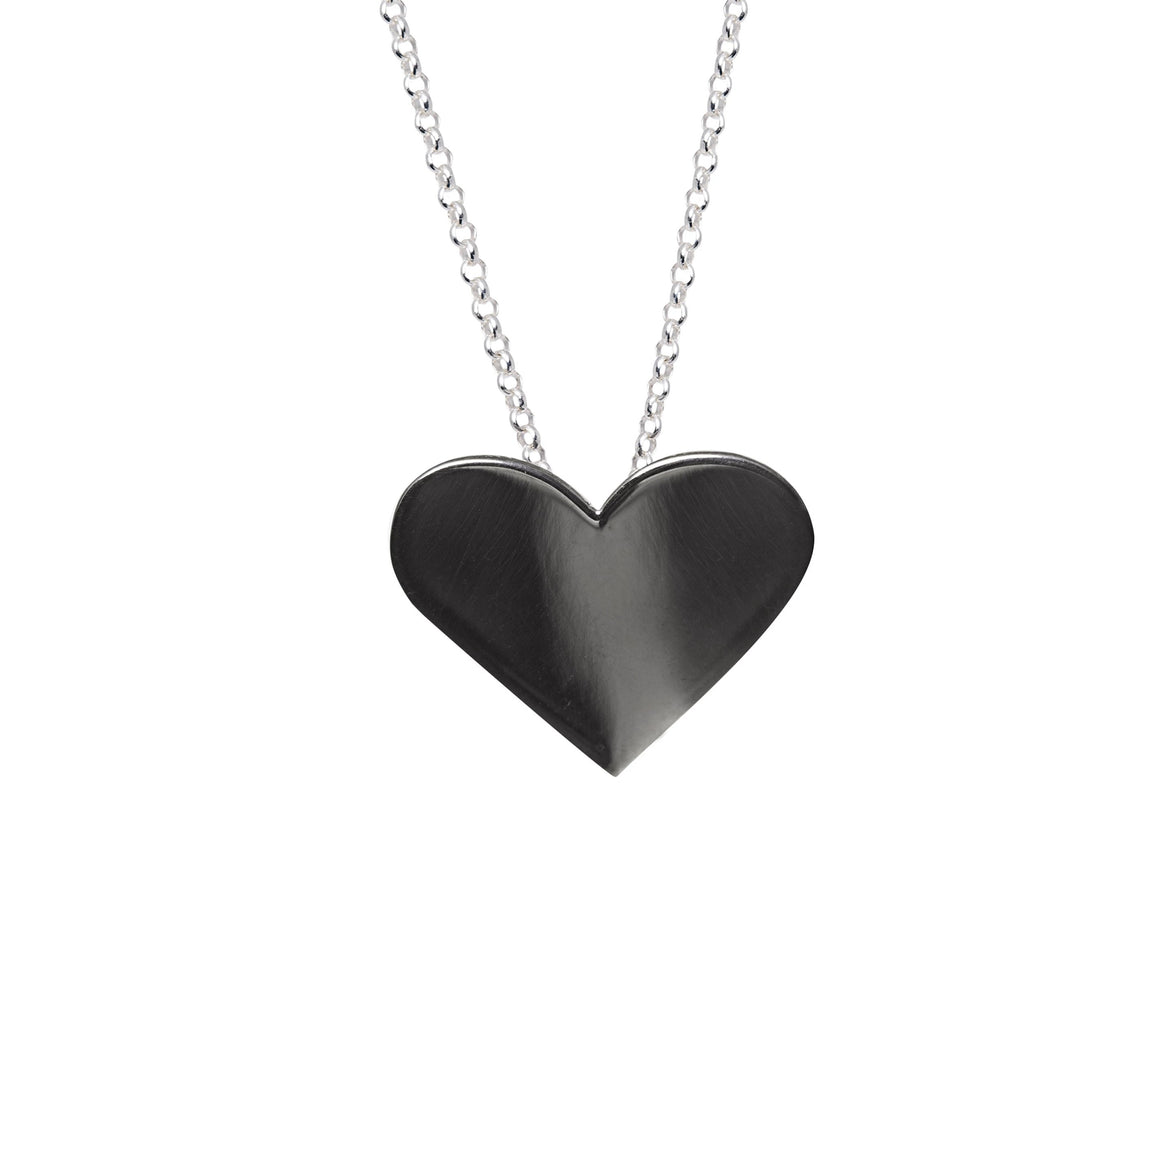 Edge Only Black Heart Pendant in sterling silver